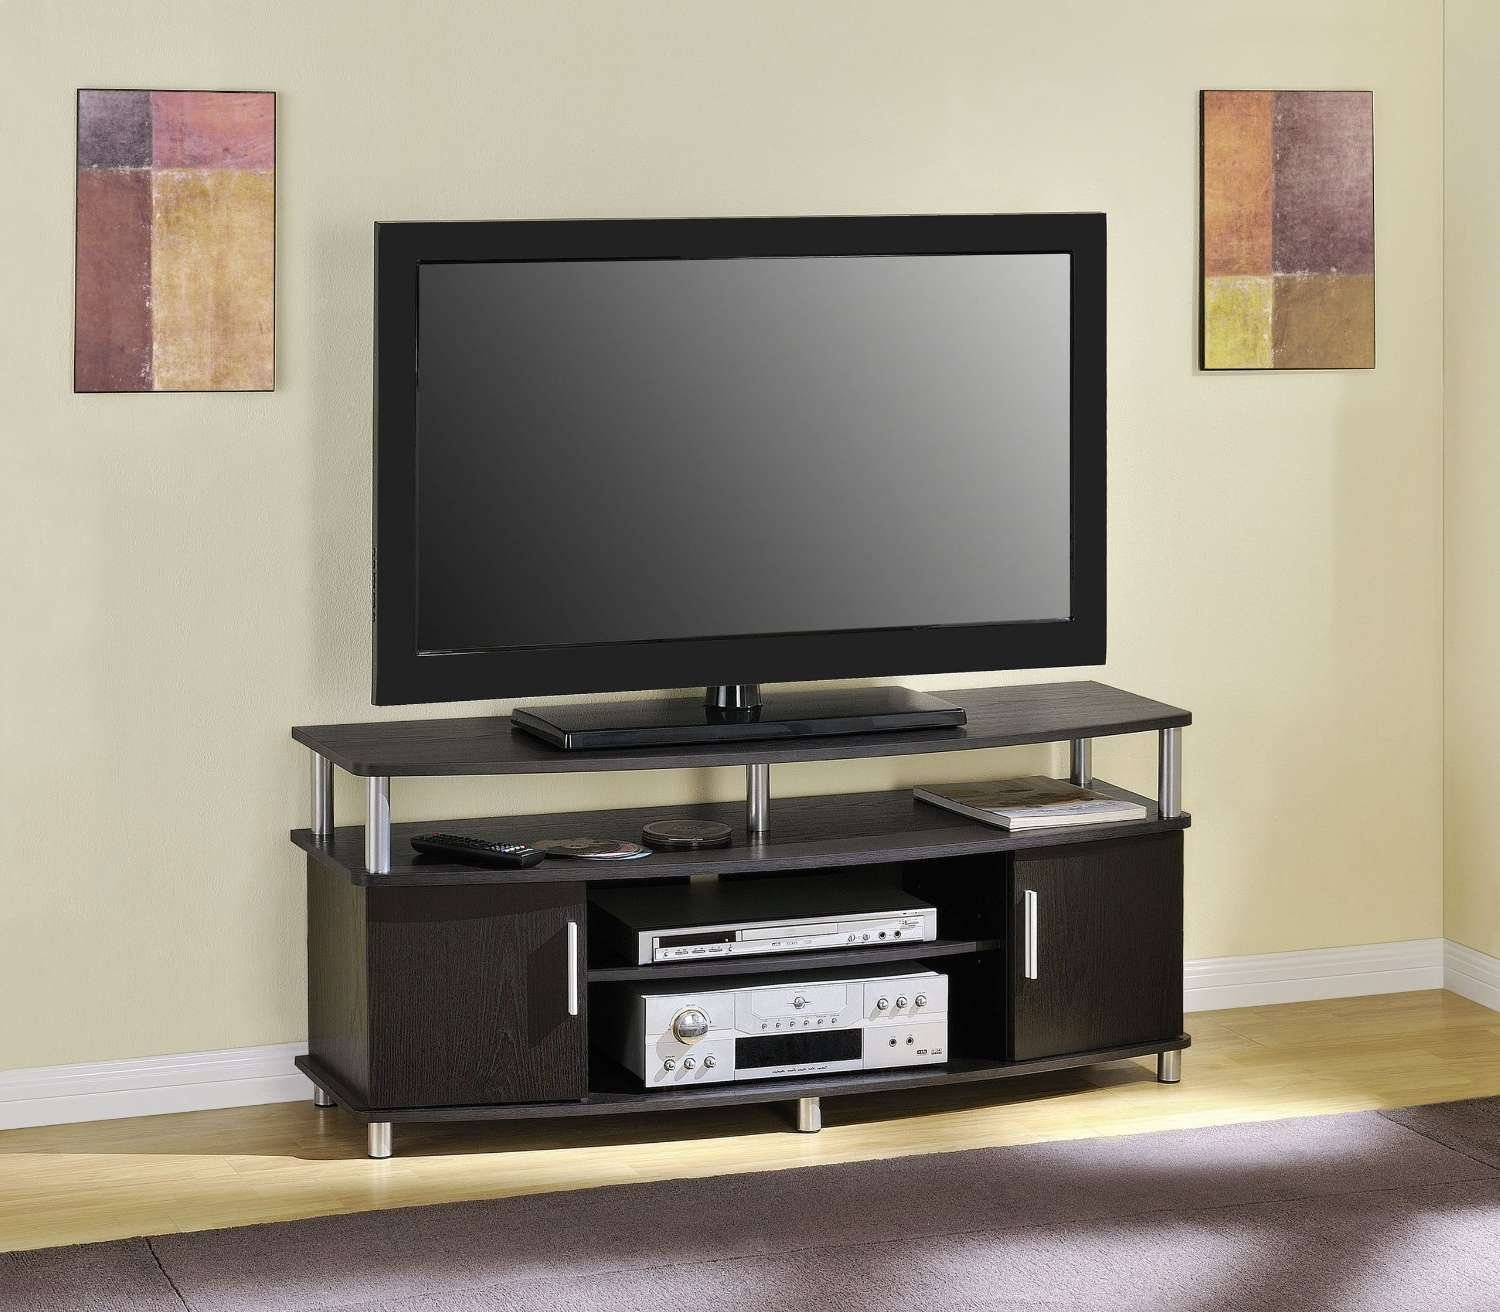 Small Black Oak Wood Tv Stand With Countertop And Cabinet Storage Regarding Modern Tv Cabinets For Flat Screens (View 14 of 20)